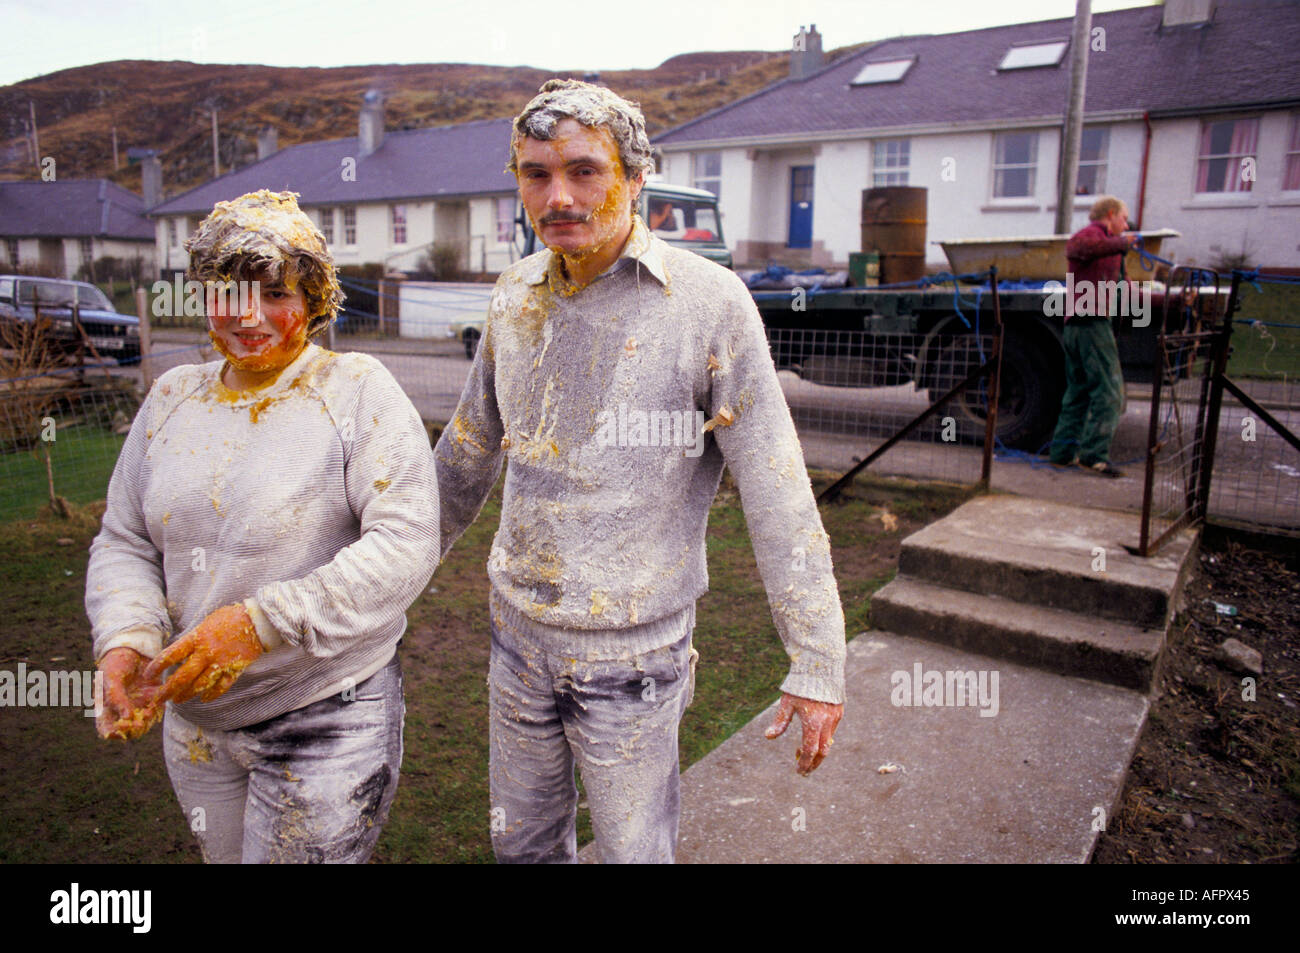 COUPLE DRIVEN THROUGH TOWN COVERED IN EGGS FLOUR PRE WEDDING CUSTOM IN MALLAIG SCOTLAND HOMER SYKES - Stock Image